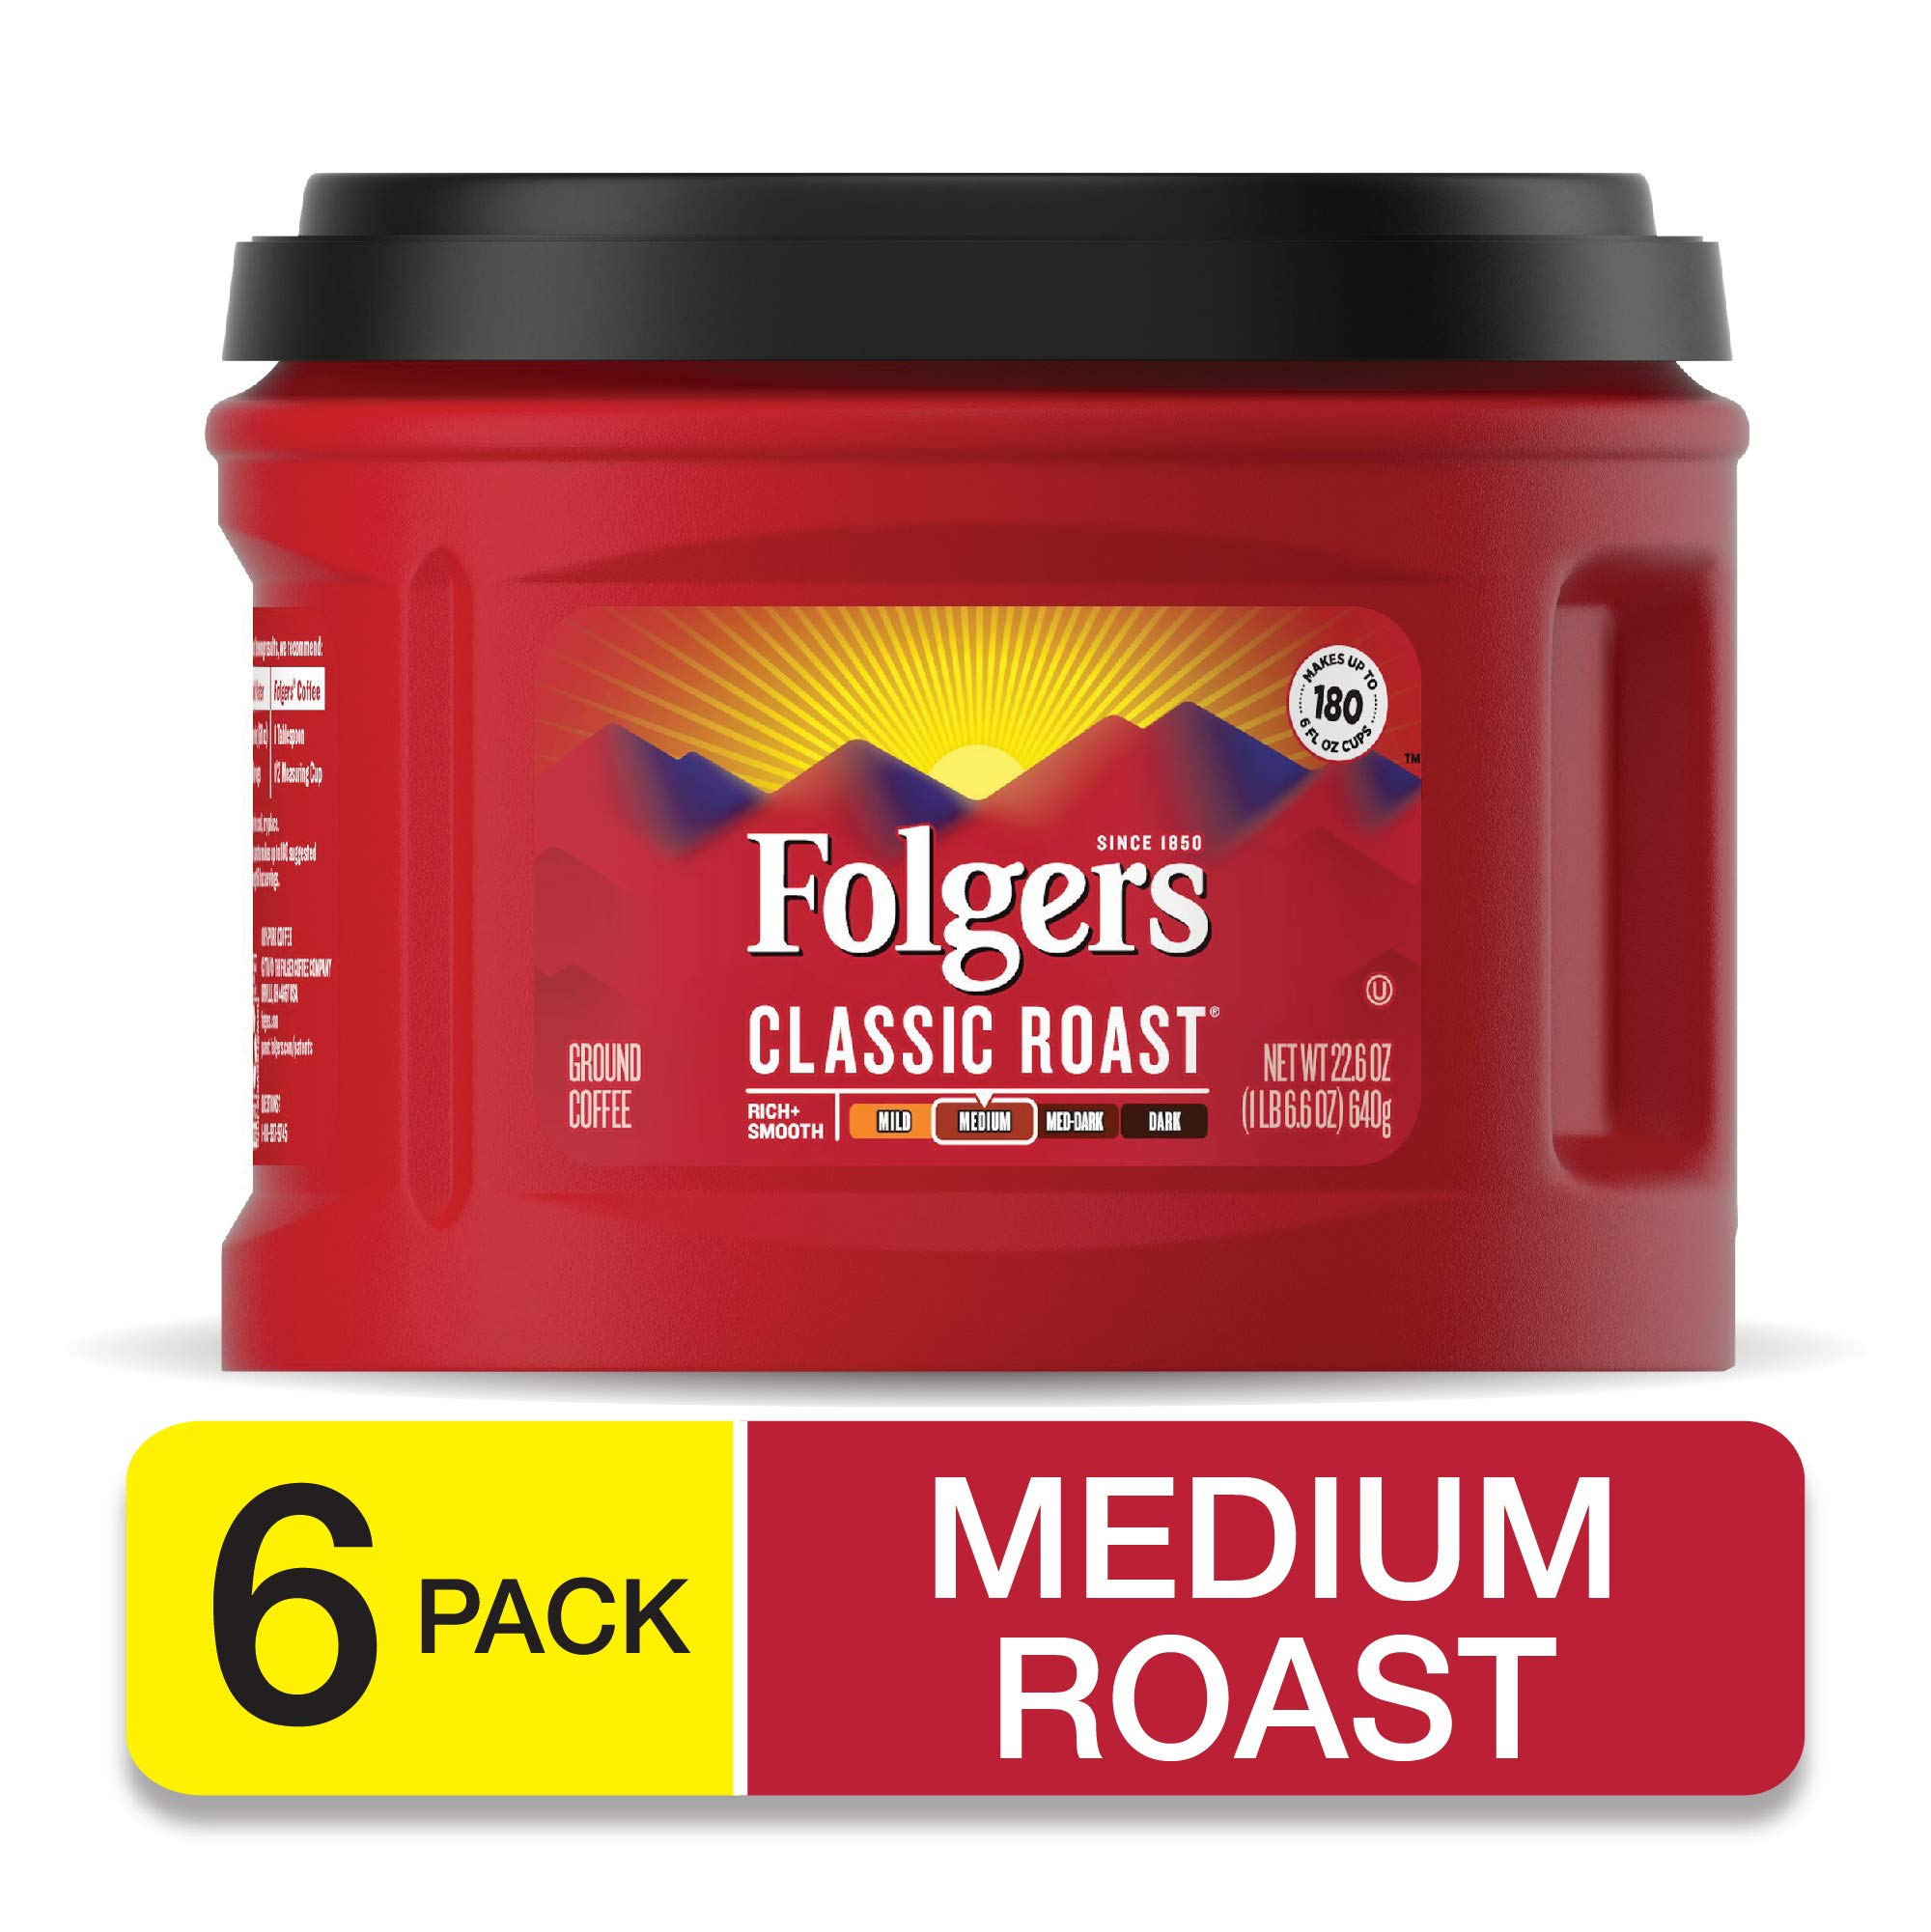 Folgers Classic Roast Ground Coffee, Medium Roast, 22.6 Ounce (Pack of 6), Packaging May Vary by Folgers